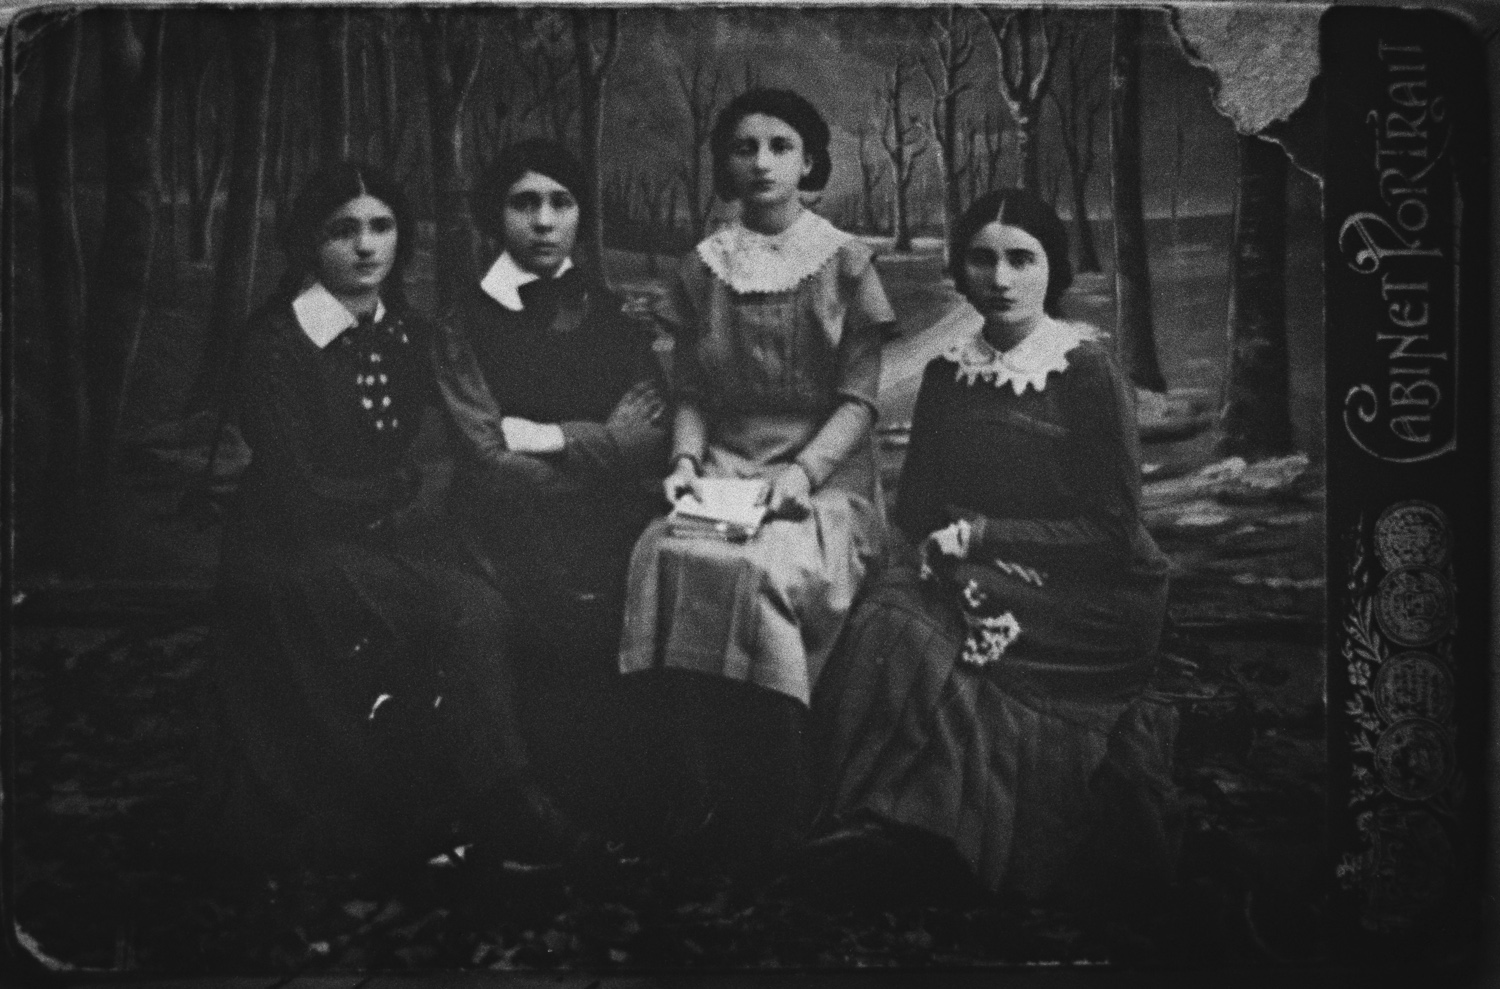 Sima (first on the left) and sisters - Lechovitch, Belarus, circa 1915